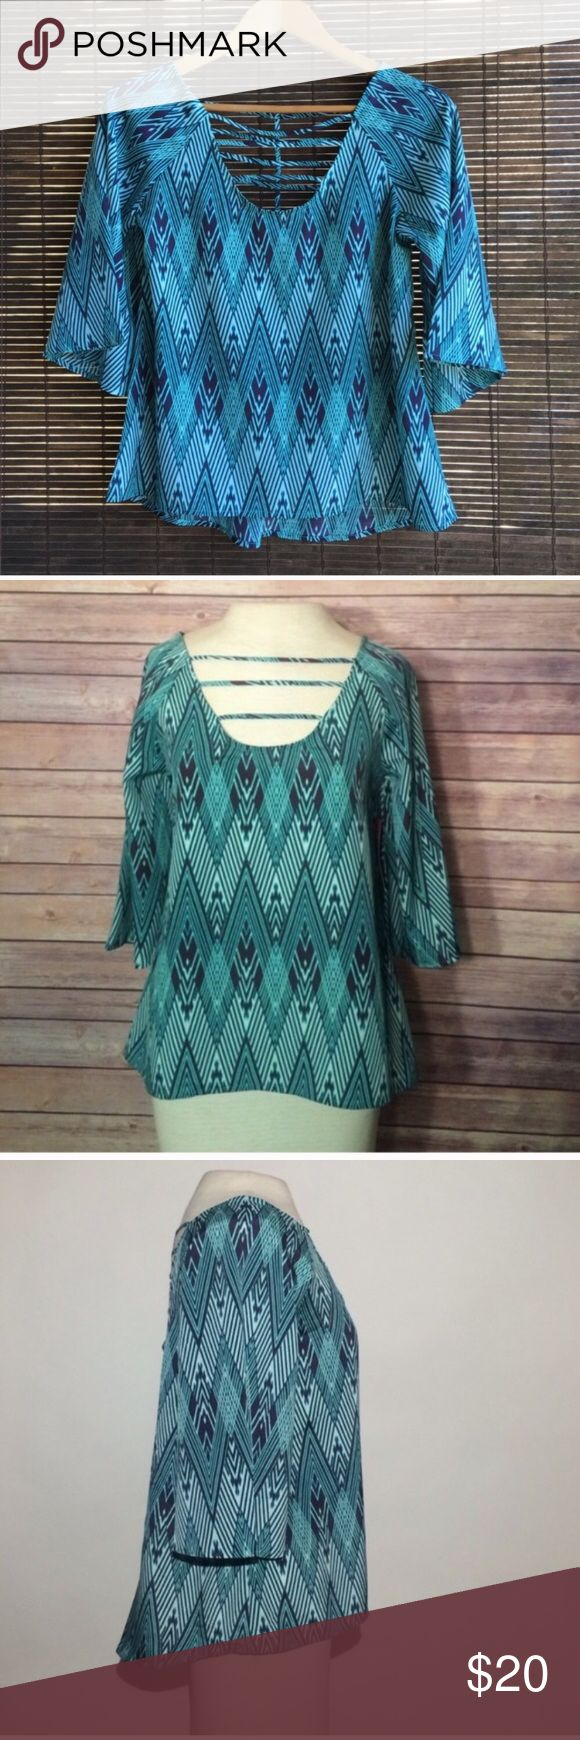 Blue chevron blouse with cut outs and bell sleeves This is a one of a kind sample shirt NWT. Size small. Unique cut outs and bold print NO TRADES! Fast shipping! Have questions on the size? Ask! I'm happy to provide all measurements! Tops Blouses